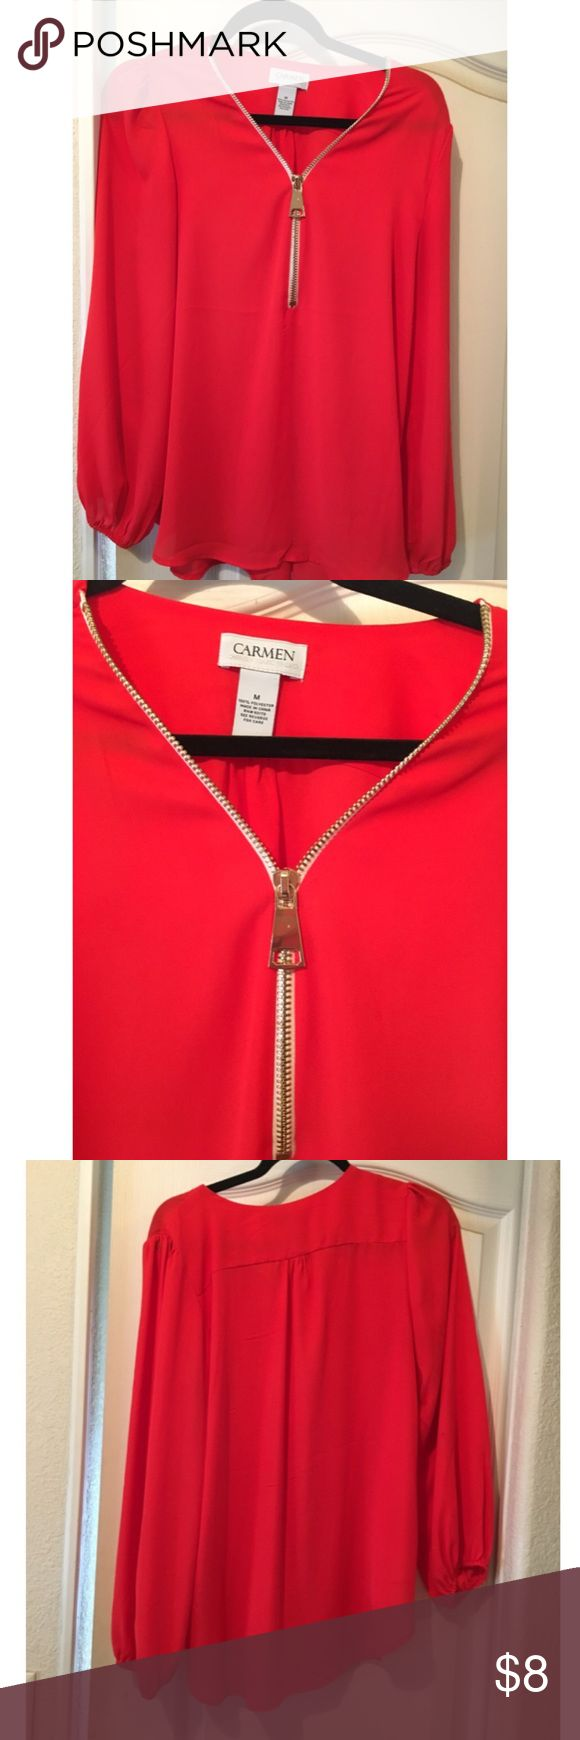 Red Zip Front Blouse super sexy sz M Popping coral red Zip up Blouse. The Zipper is fully functional so if you want to make this extra sexy. Features big gold Zipper accent. Size Medium or can fit a large. Very form flattering sits nicely on your hips. Elegant flowy sleeves. Original owner, non smoker. No stains or rips. Check out my other items and bundle and save!!! I ship within 24 hours! 🛍👜💥 (similar brands: Forever 21, H&M, Zara, Express) posted as Bebe for exposure. bebe Tops…